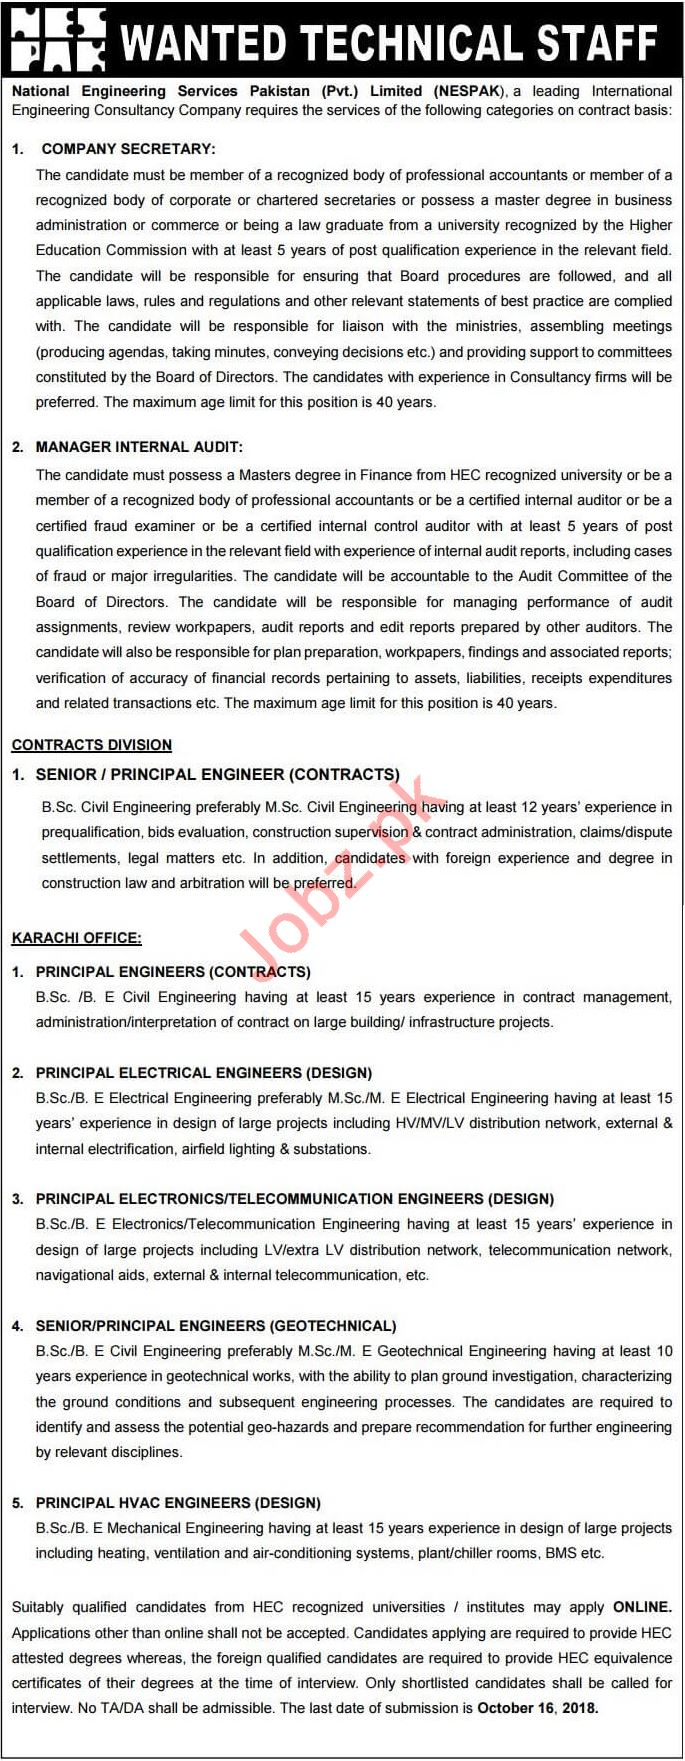 NESPAK Technical Jobs 2018 in Lahore